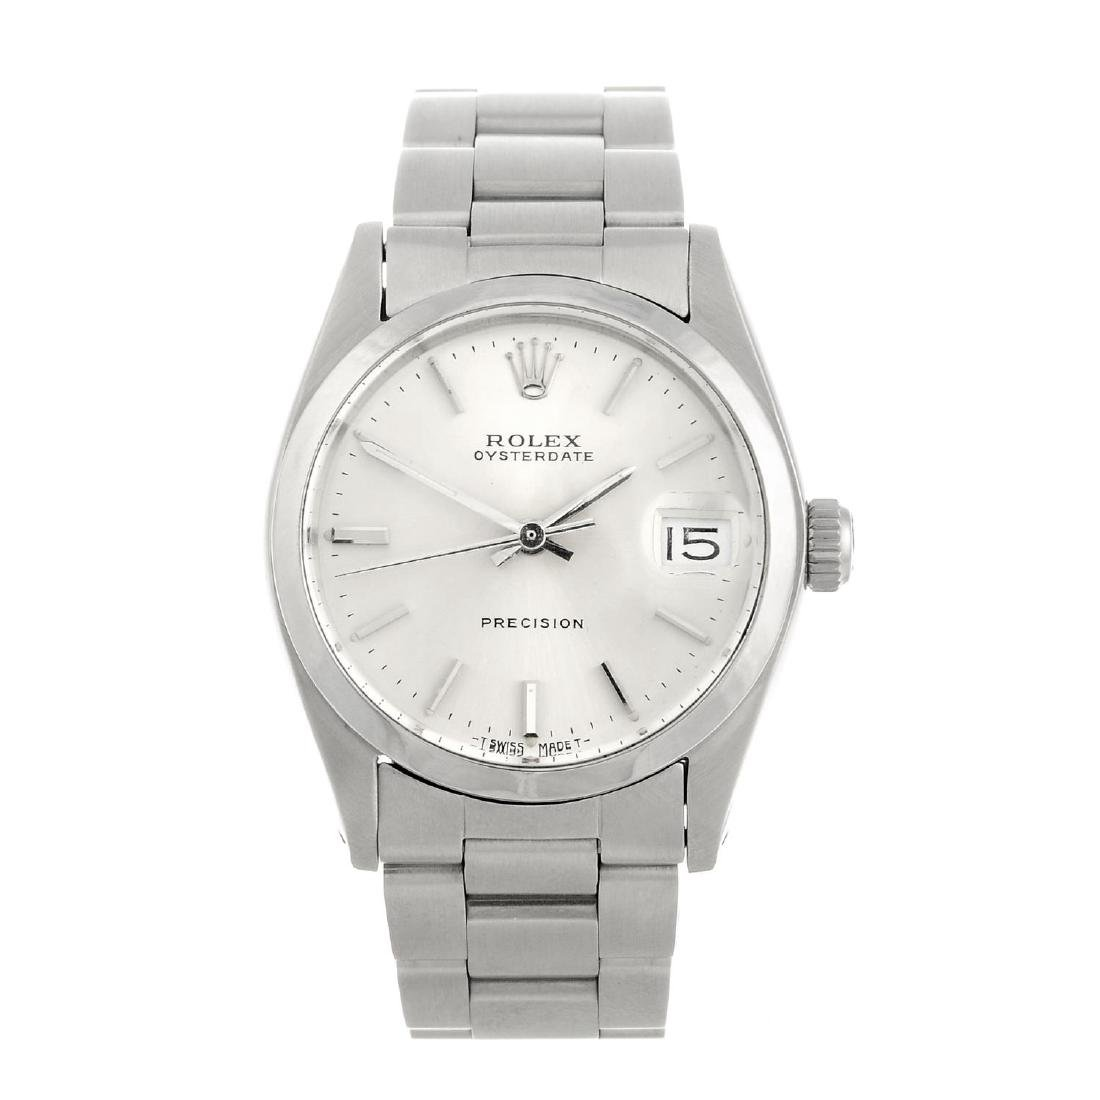 ROLEX - a mid-size Oysterdate Precision bracelet watch.